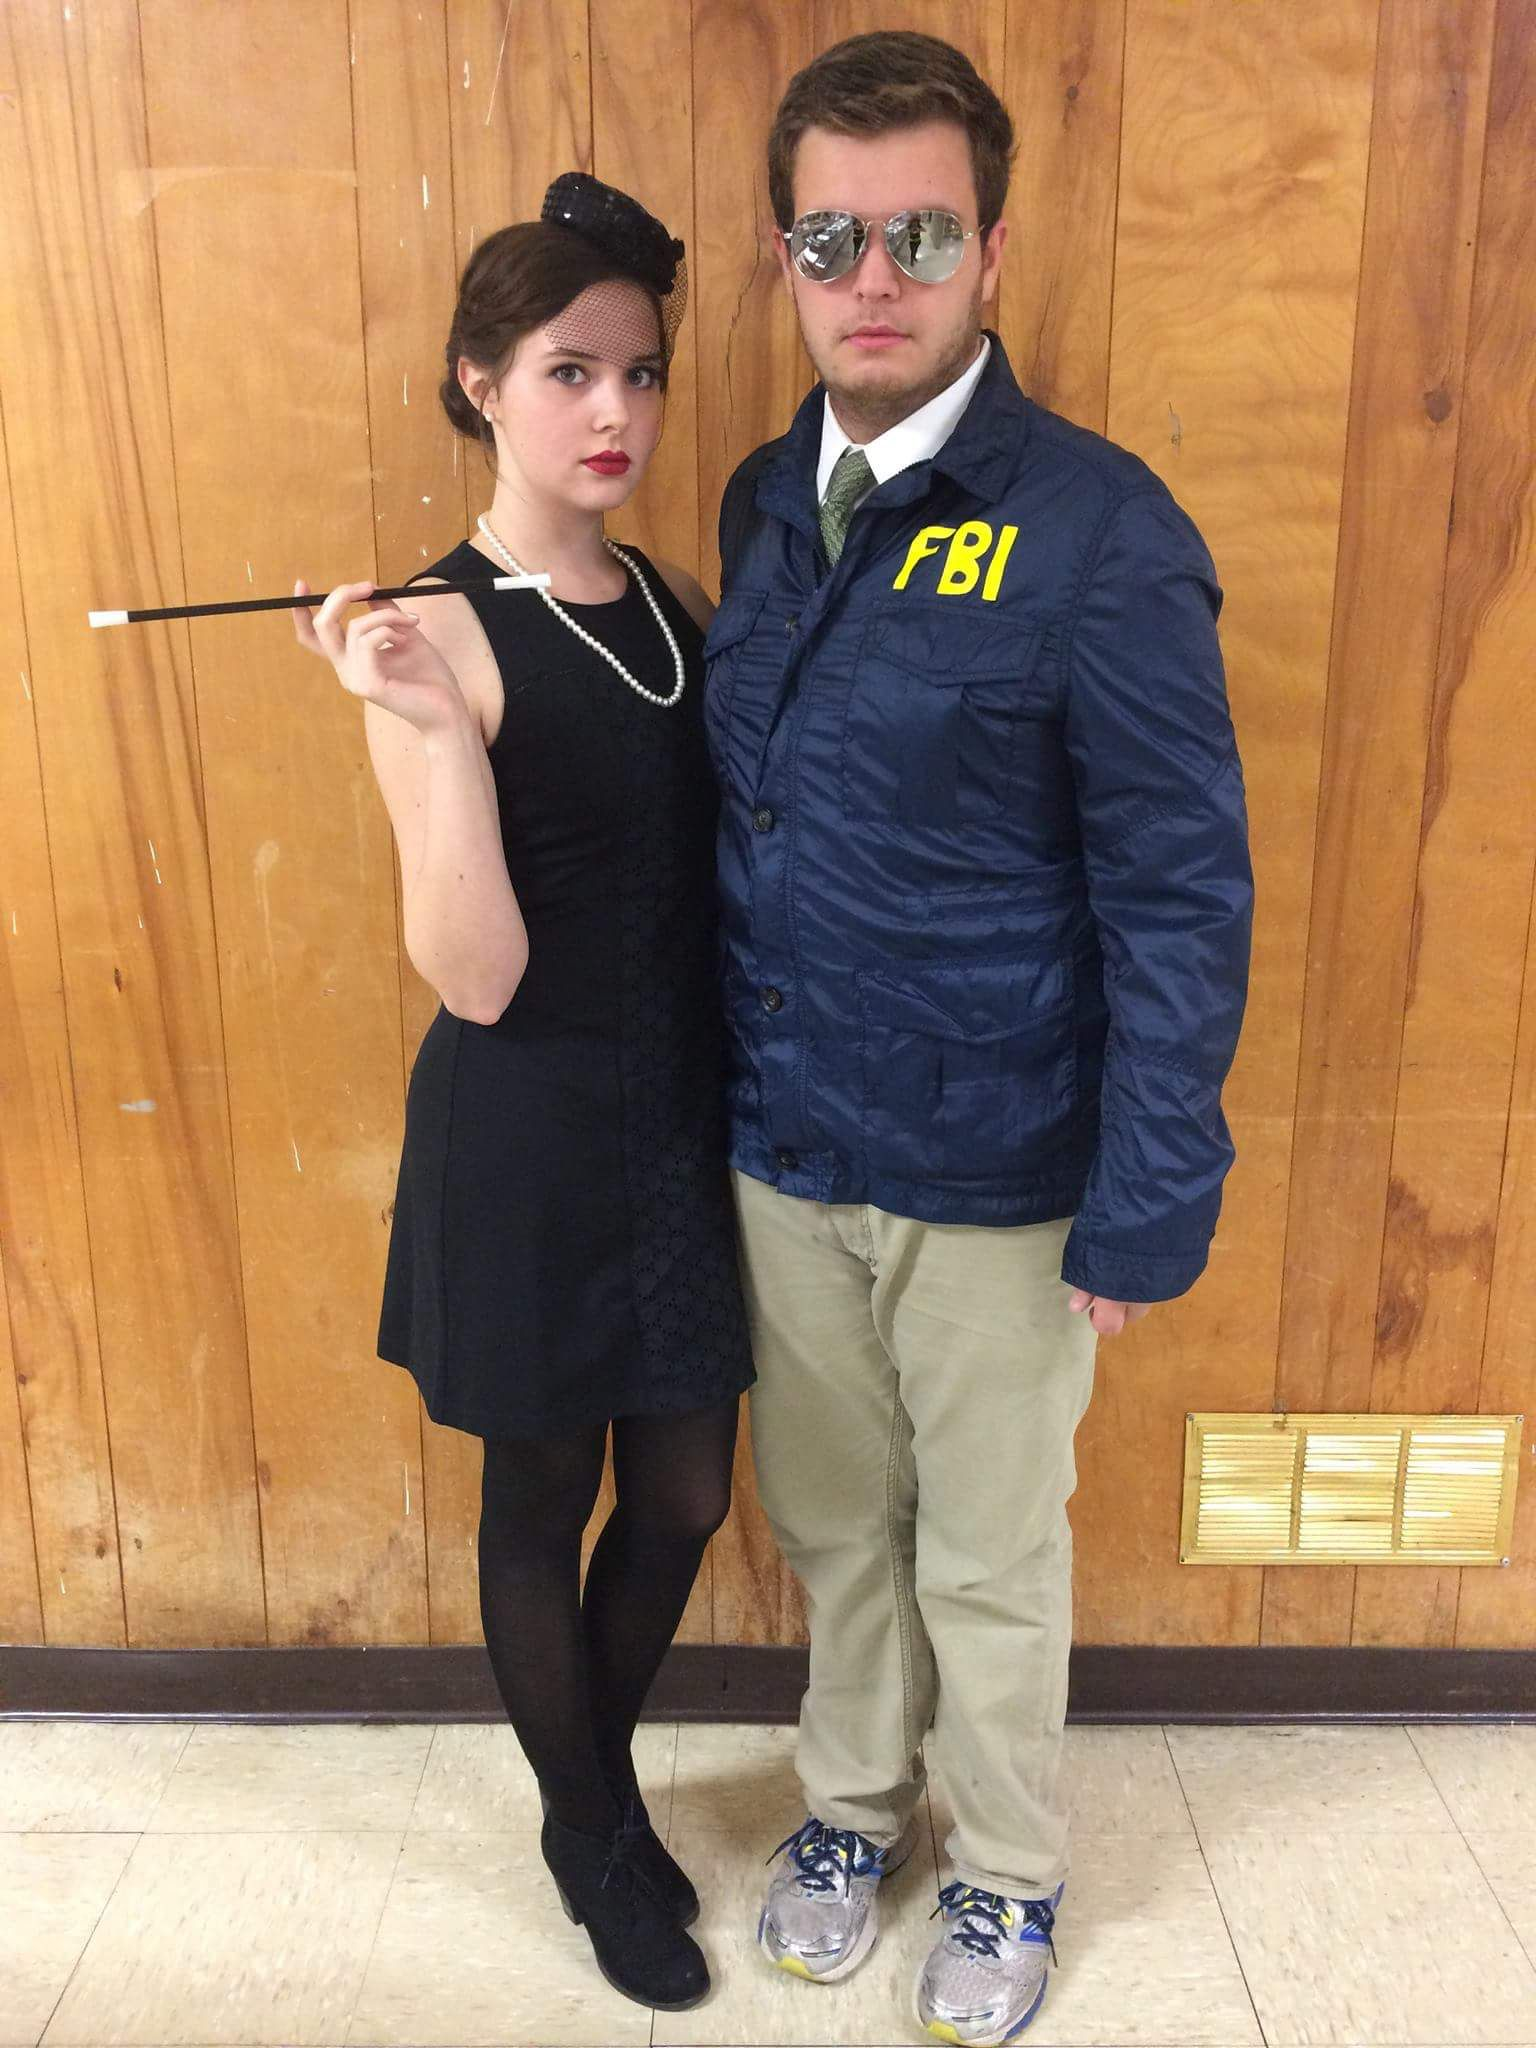 burt mcklin fbi and janet snakehole couples halloween costume